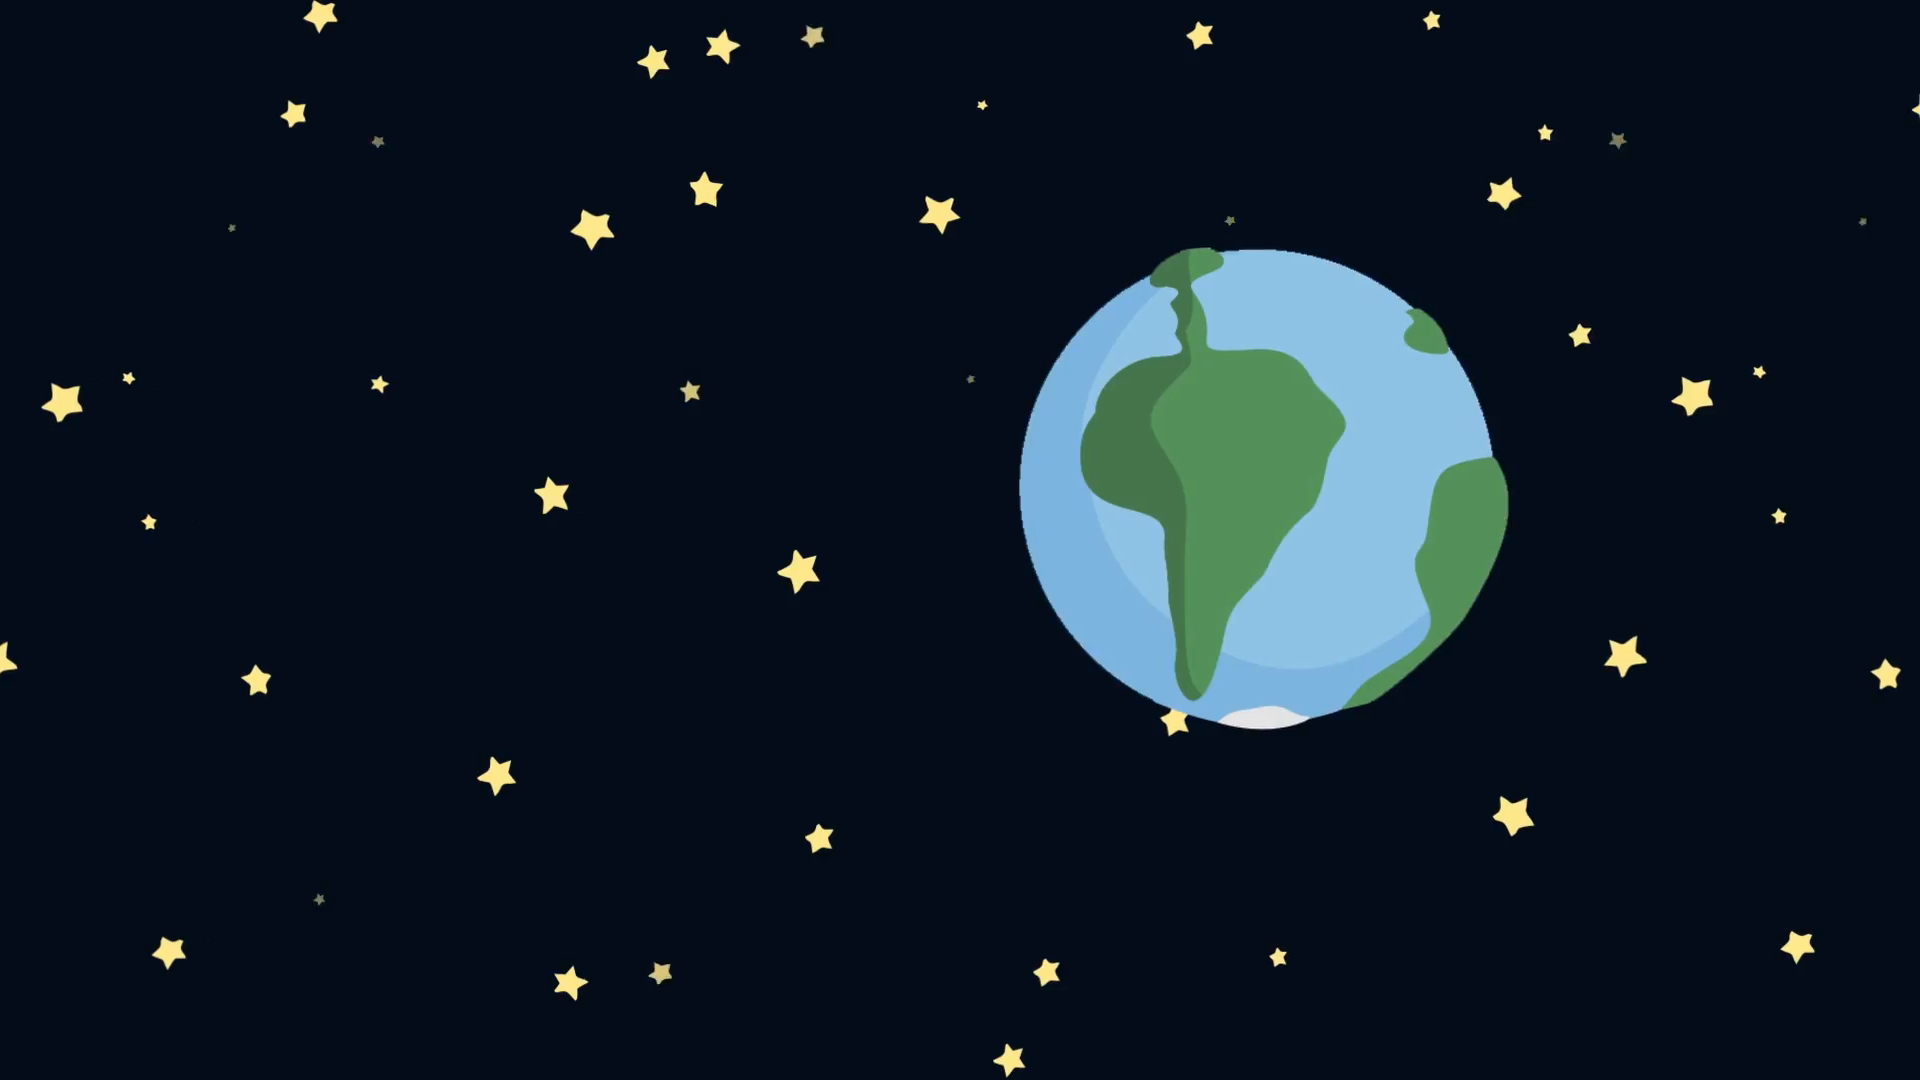 Cartoon Earth from Space with Starry Night Motion Background 1920x1080